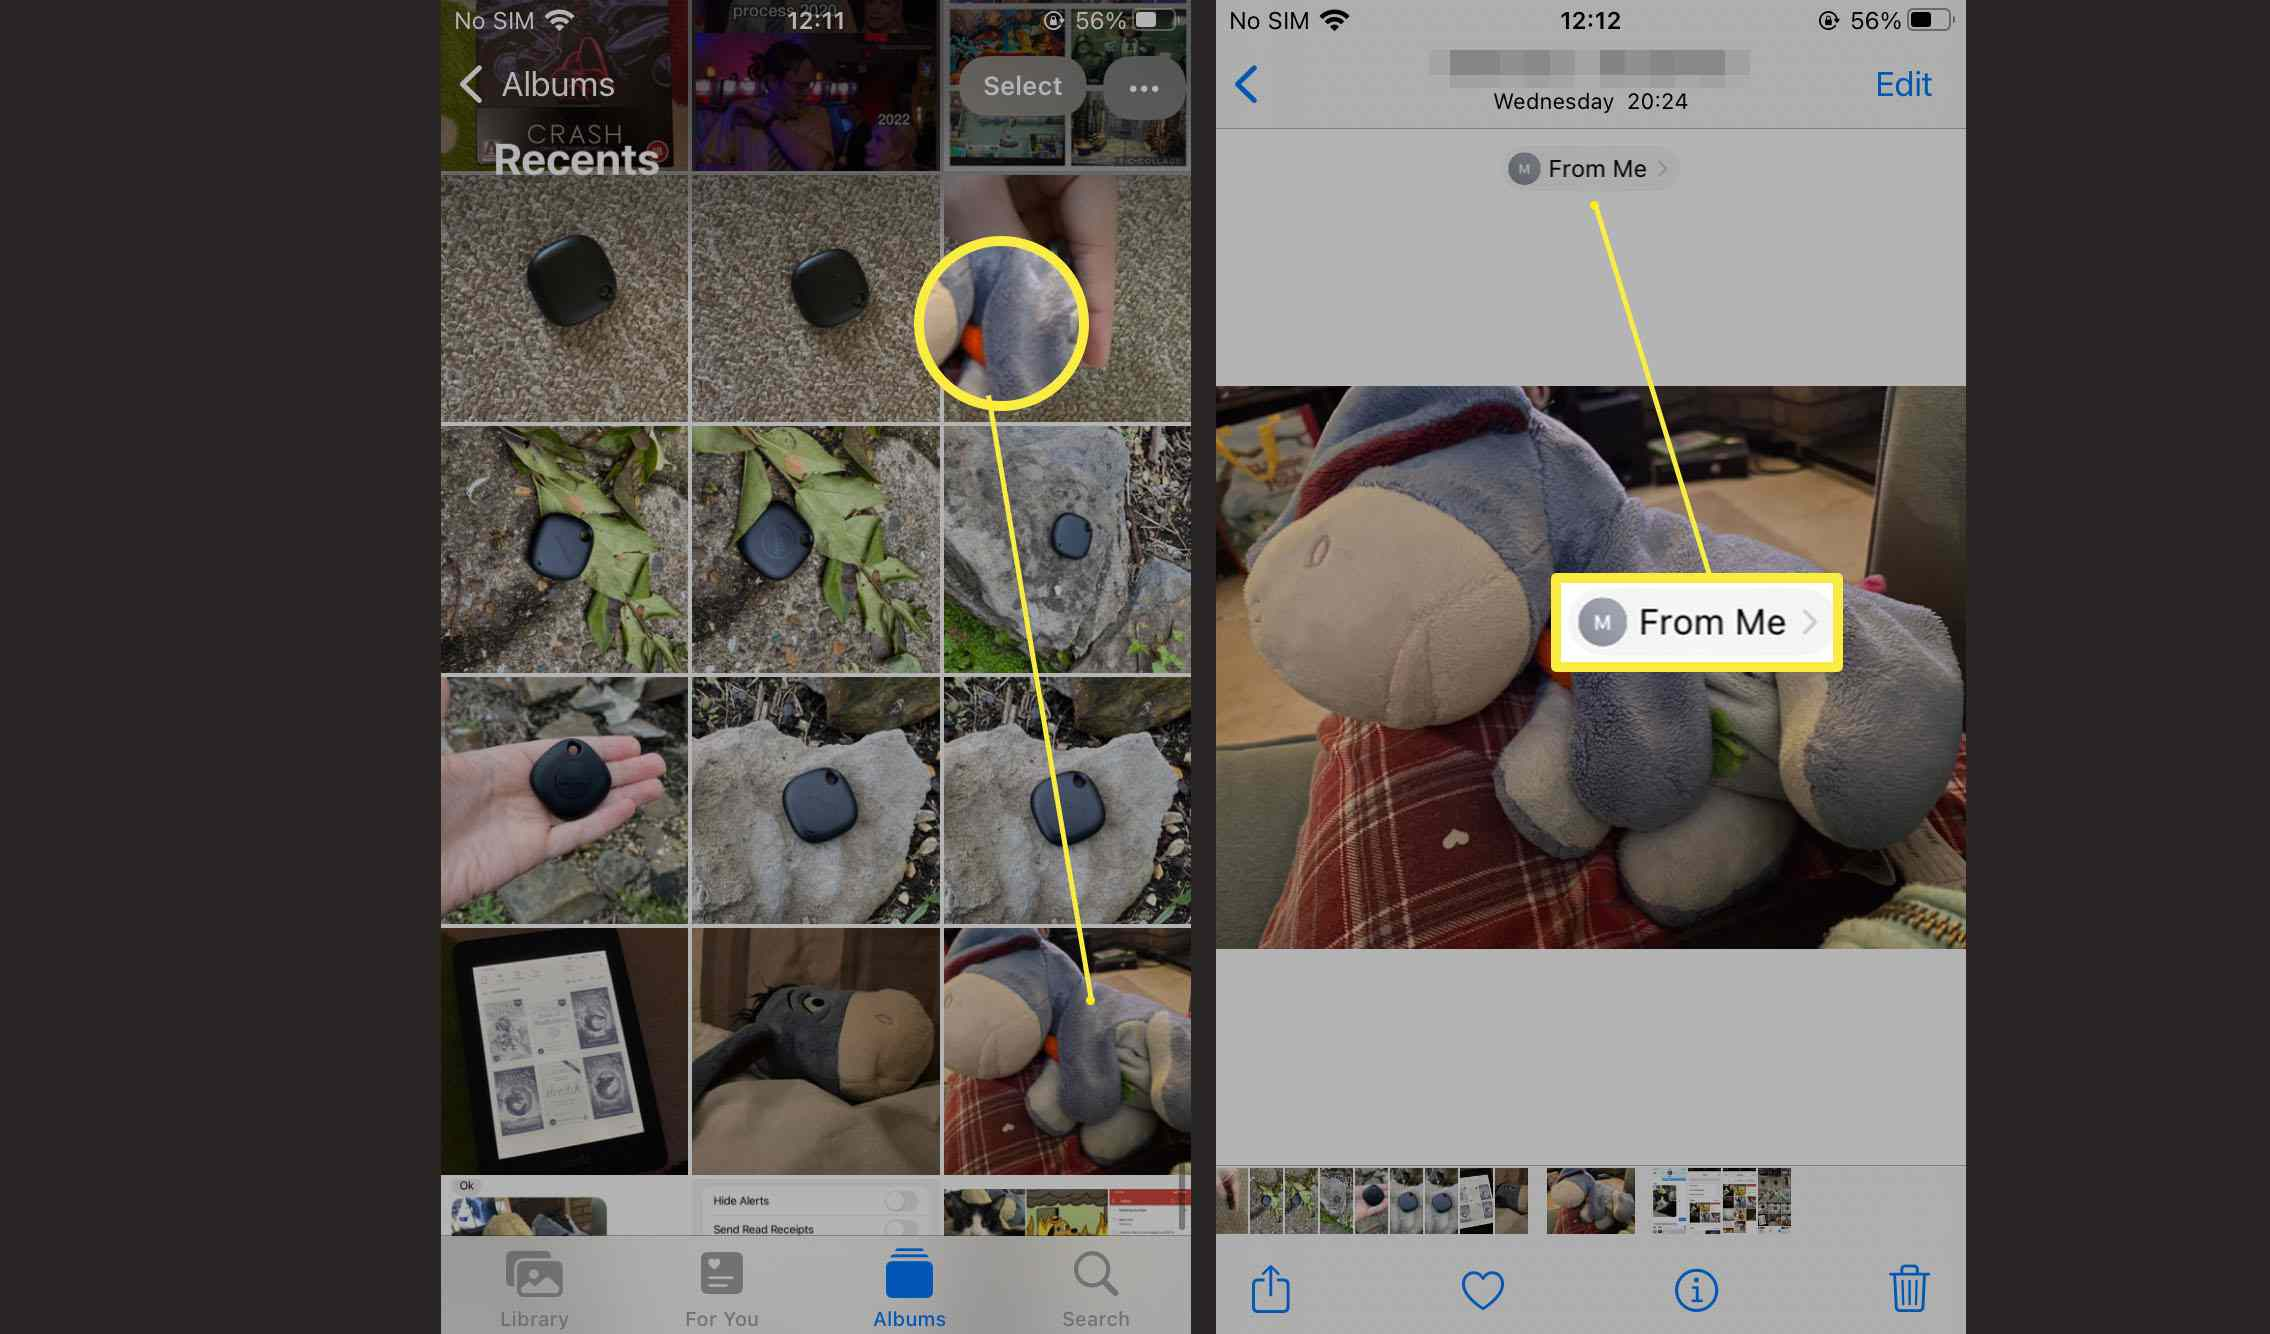 Steps required to view other photos sent by someone in iOS 15 Messages